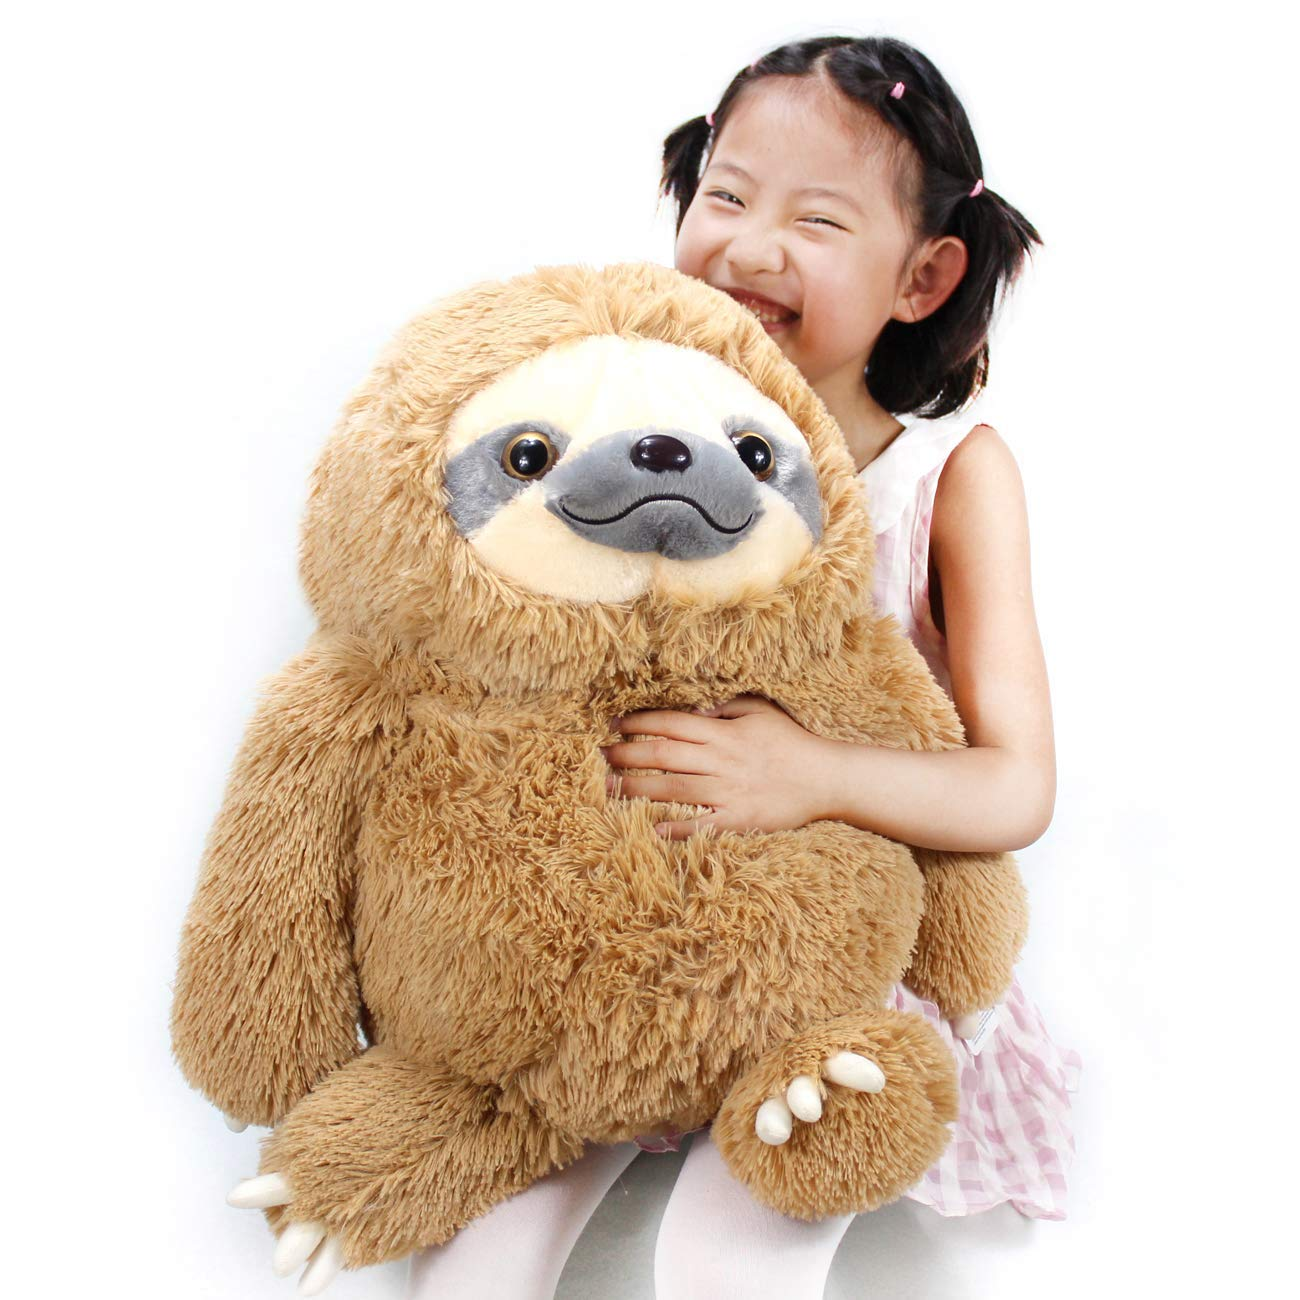 Winsterch Fluffy Sloth Stuffed Animal Toy Gift for Kids Large Plush Sloth Bear Baby Doll Birthday Gifts ,19.7 inches by Winsterch